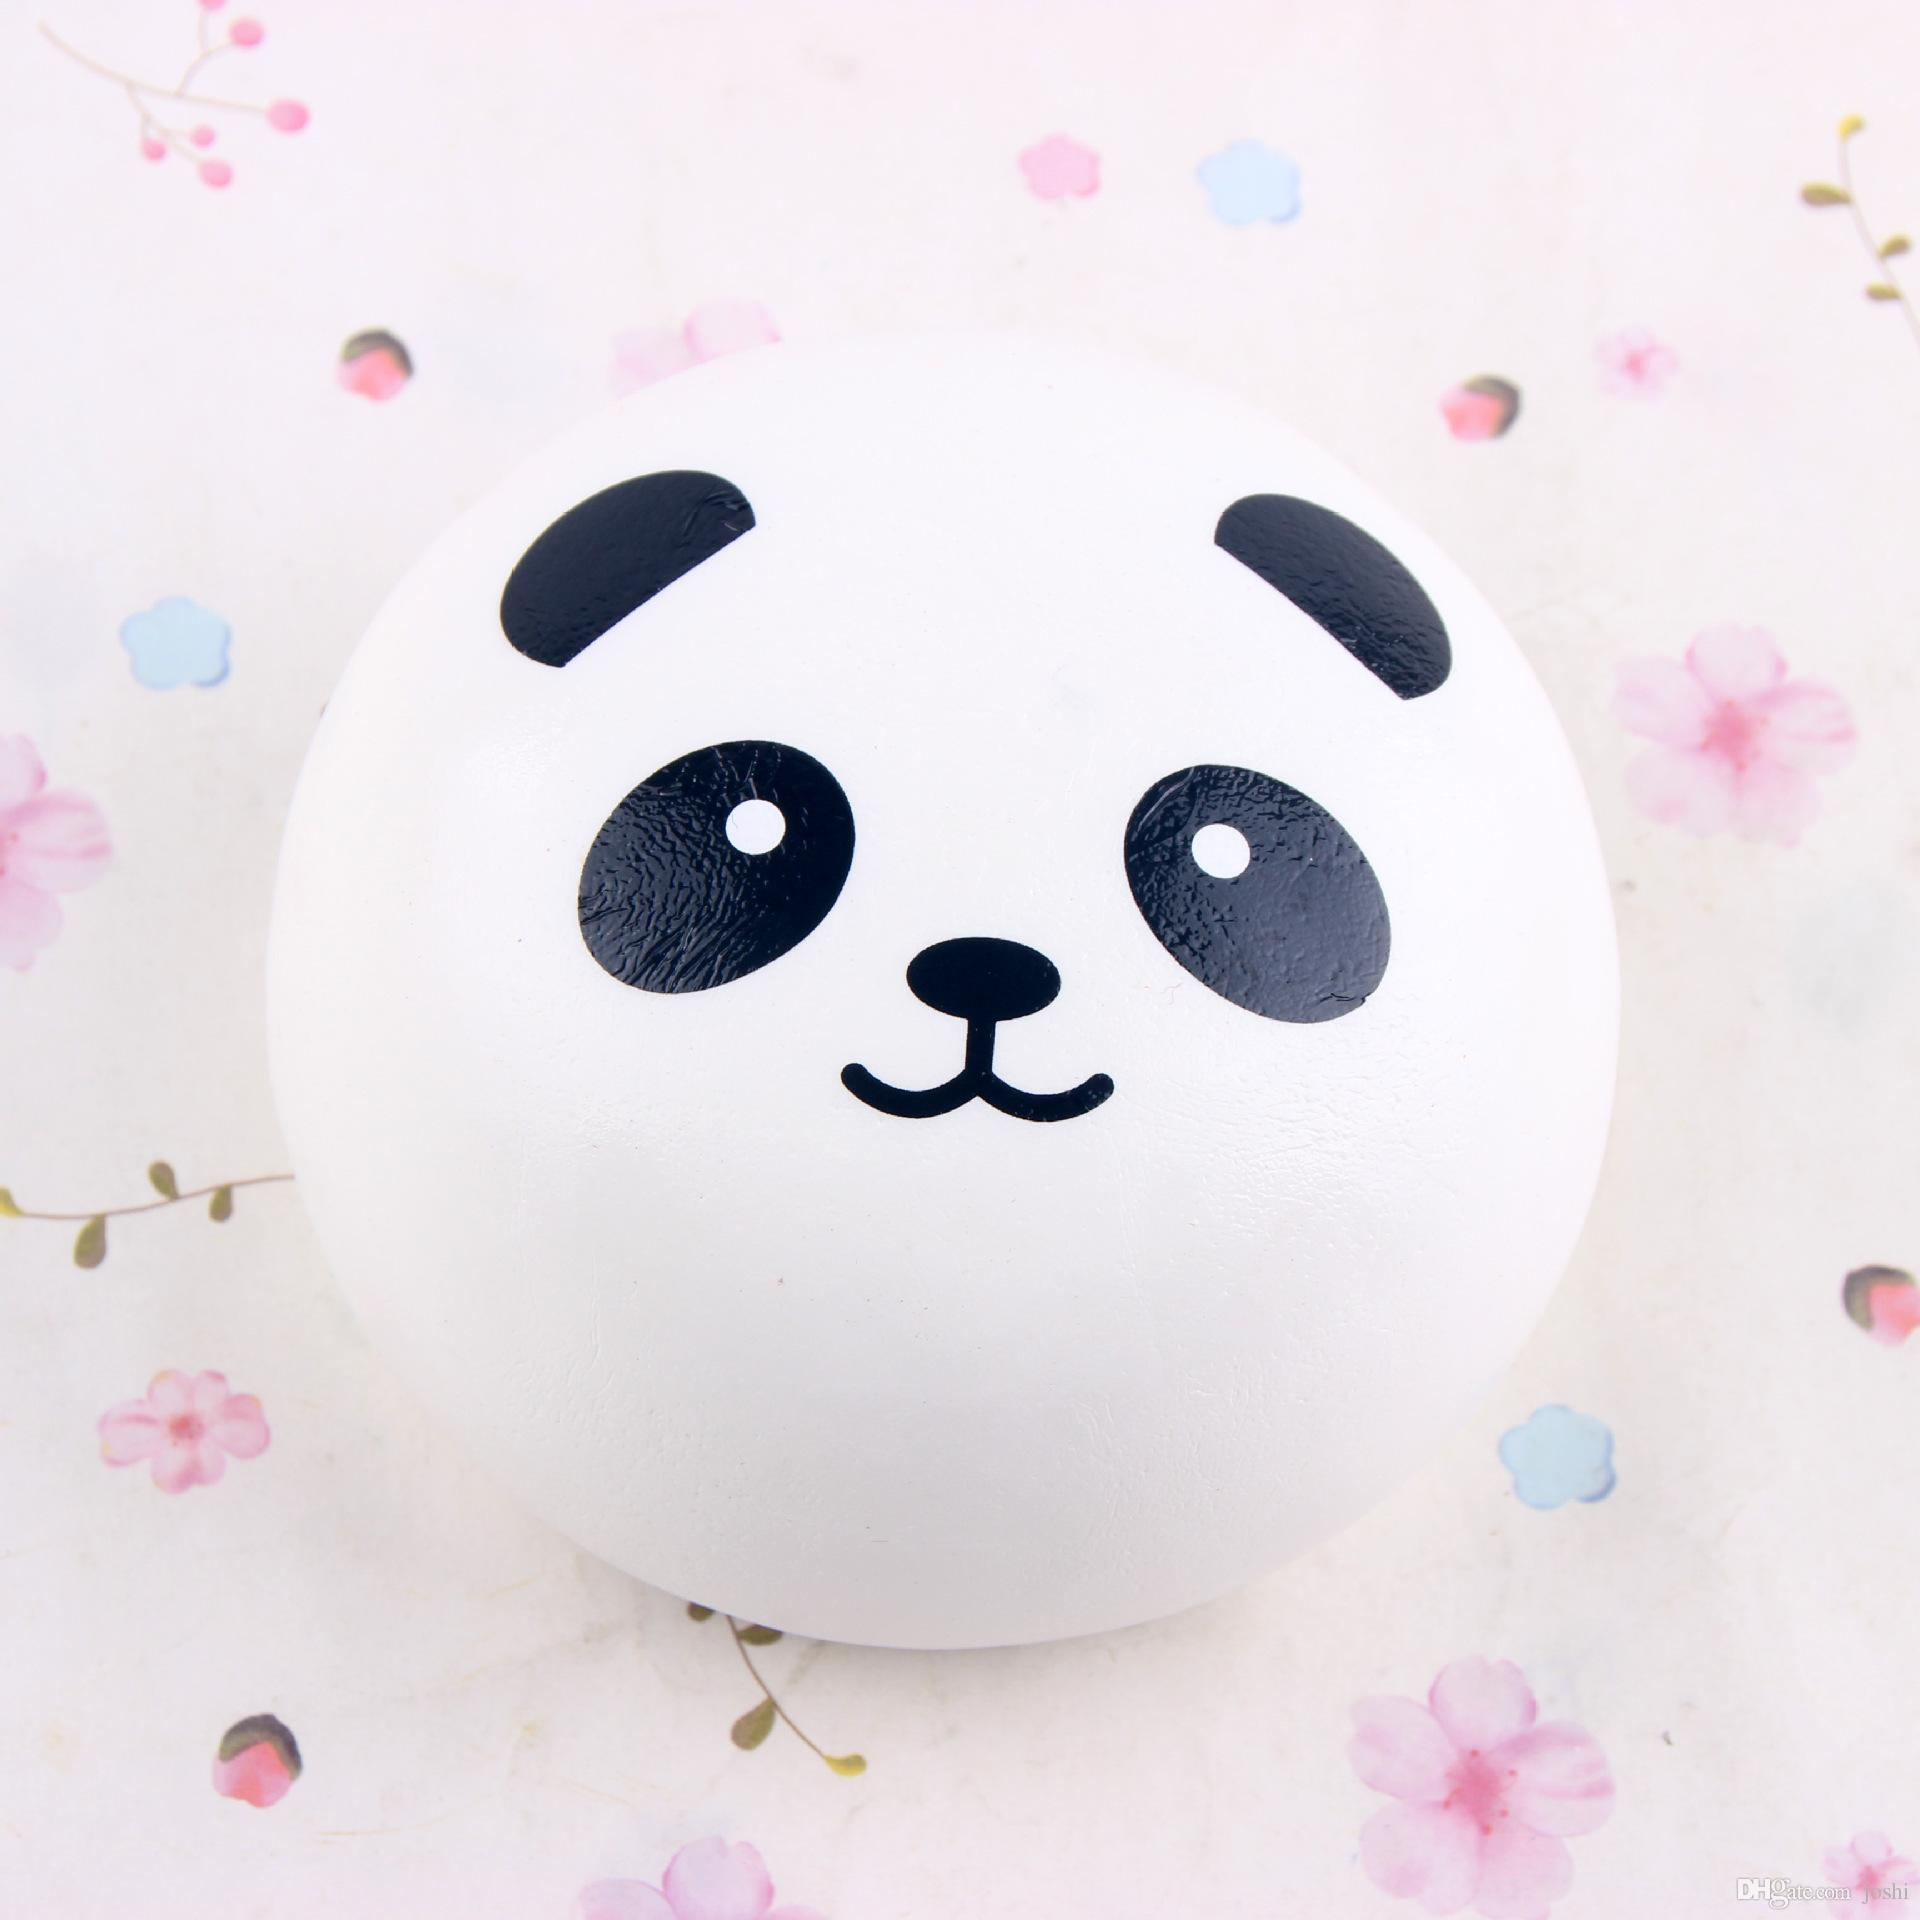 2018 10cm Cute Panda Squishy Buns Bread Charms Kawaii Soft Scented Pu Jumbo Slow Rising Squeeze Phone Charm Squishies Pendant From Joshi